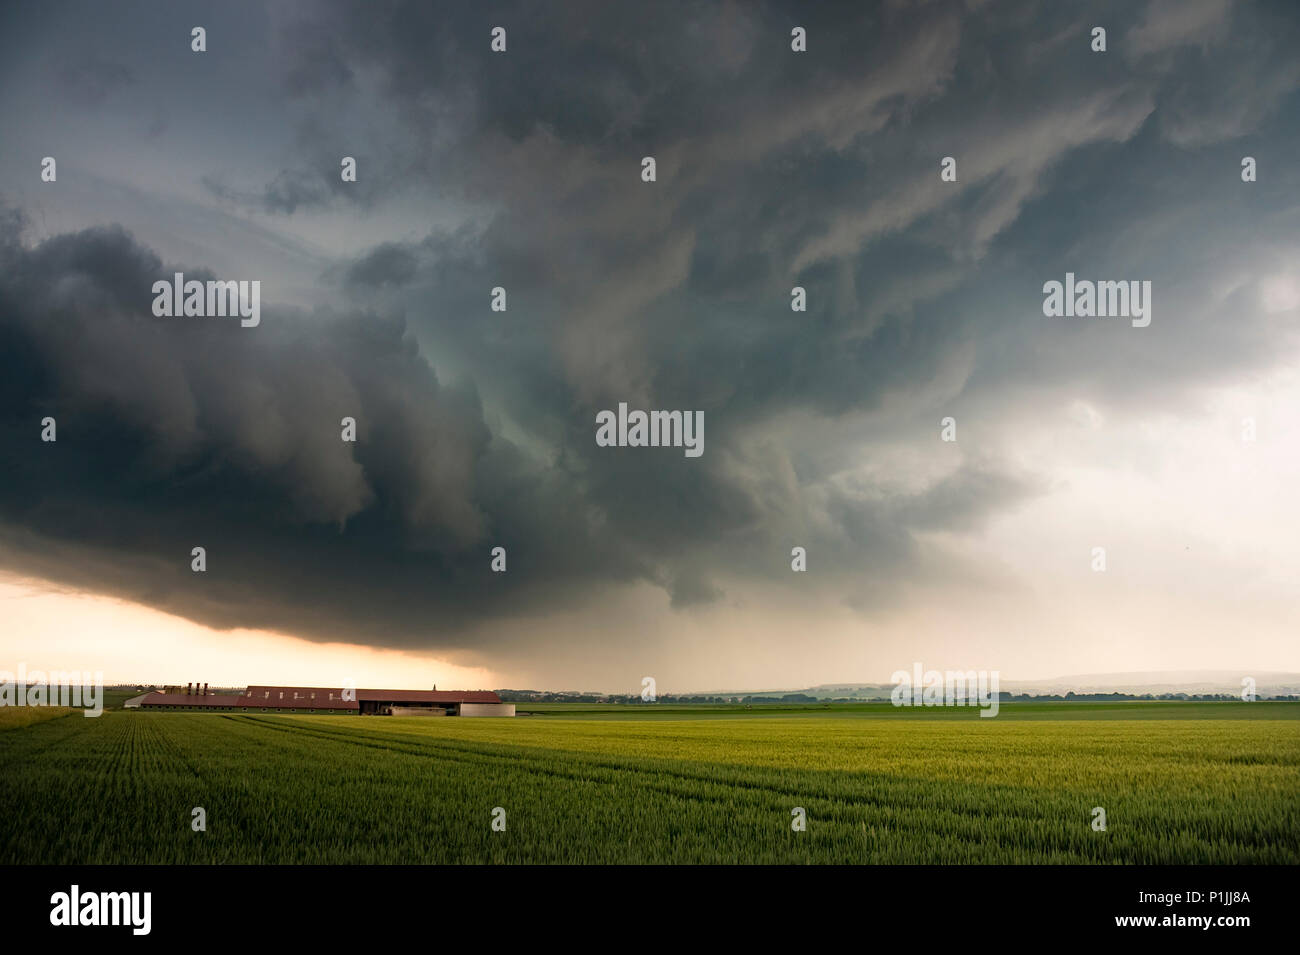 Backside of a dynamic thunderstorm near Inheiden, Hessia, Germany - Stock Image